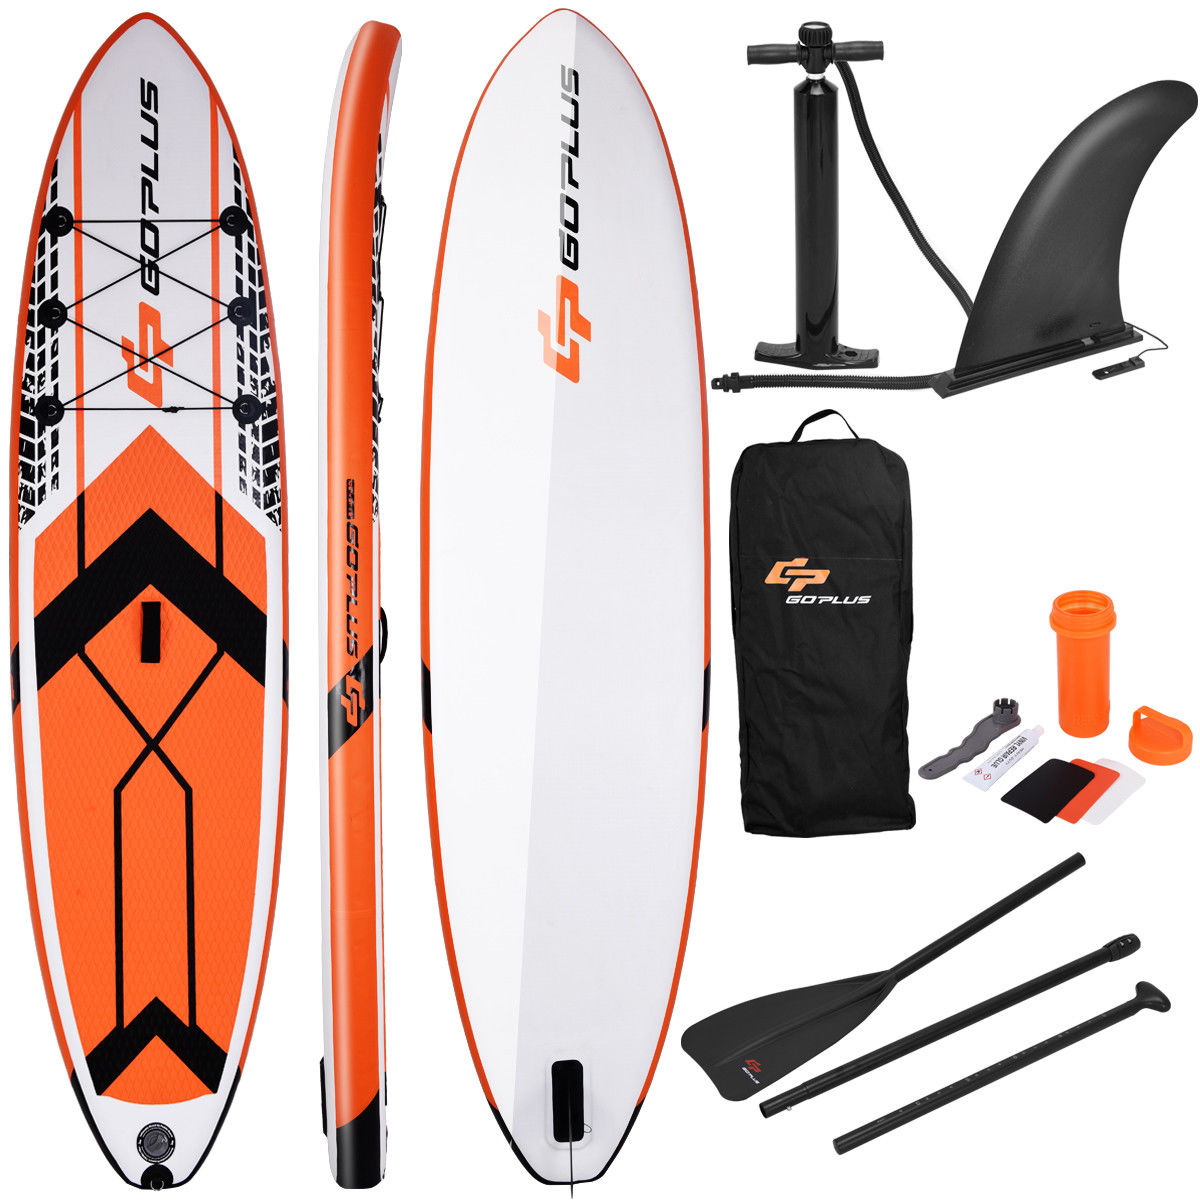 Costway Goplus 10.5' Inflatable Stand Up Paddle Board SUP W  Fin Adjustable Paddle Backpack by Costway